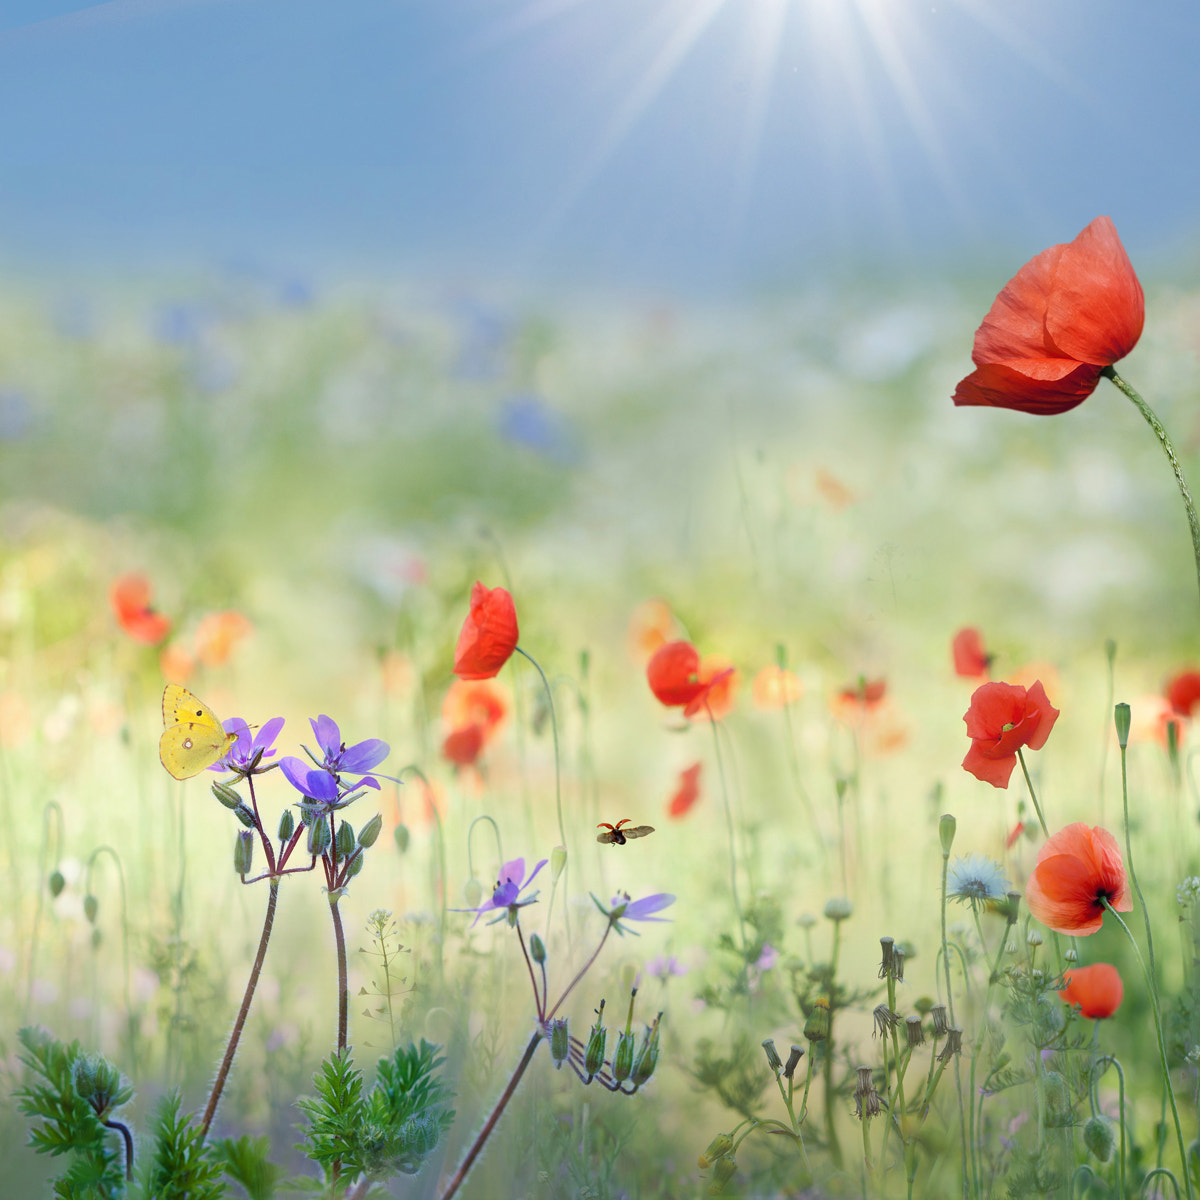 Photograph Meadow with poppies by Teuni Stevense on 500px